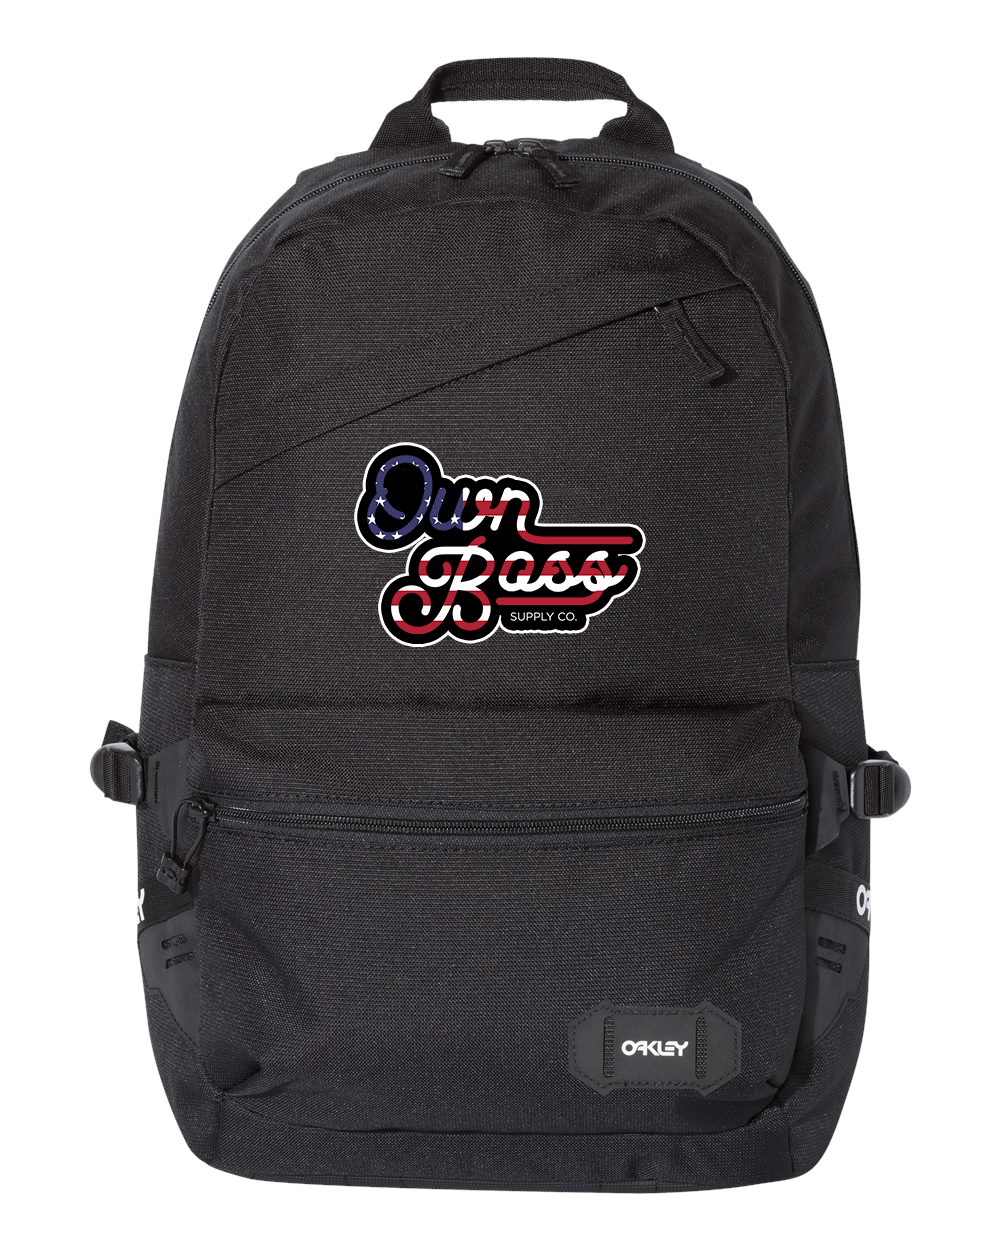 American flag oakley backpack